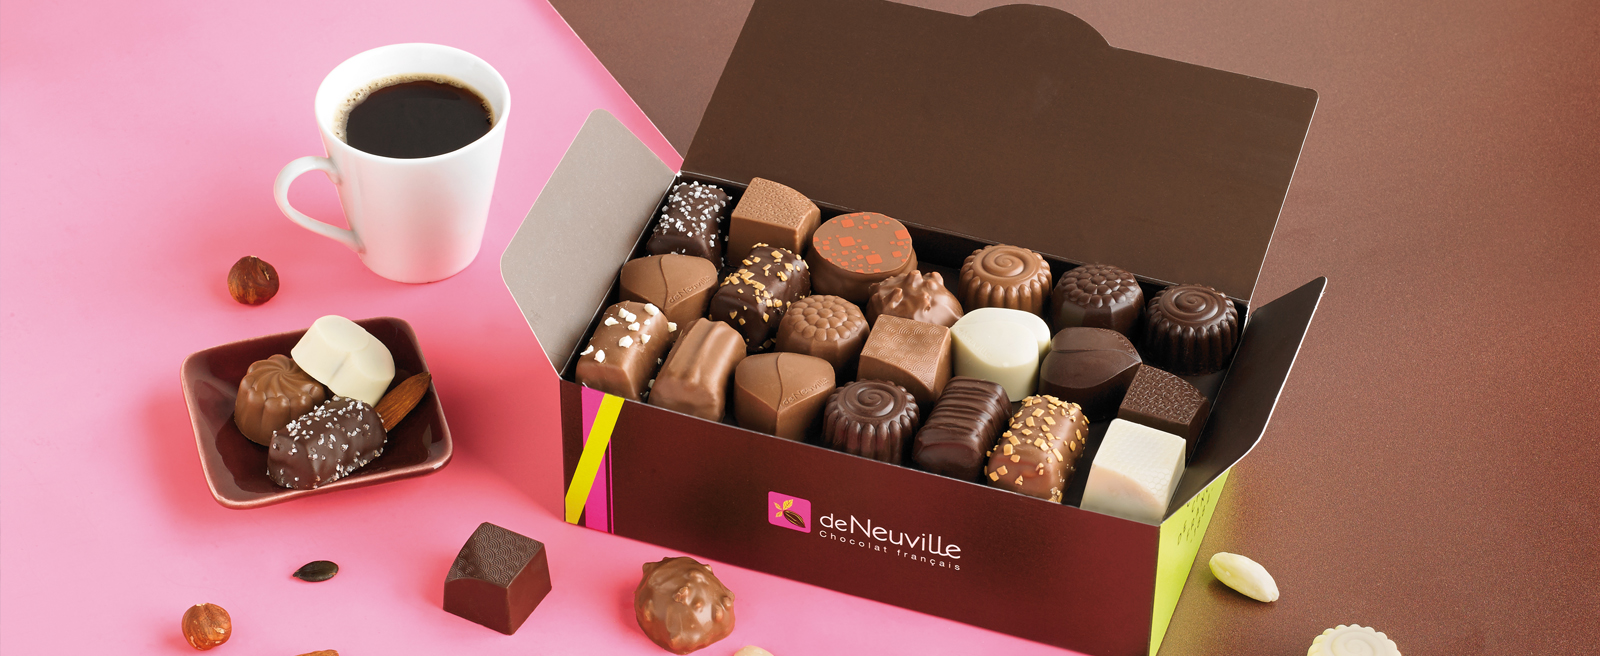 Chocolats de Neuville - Usines Center